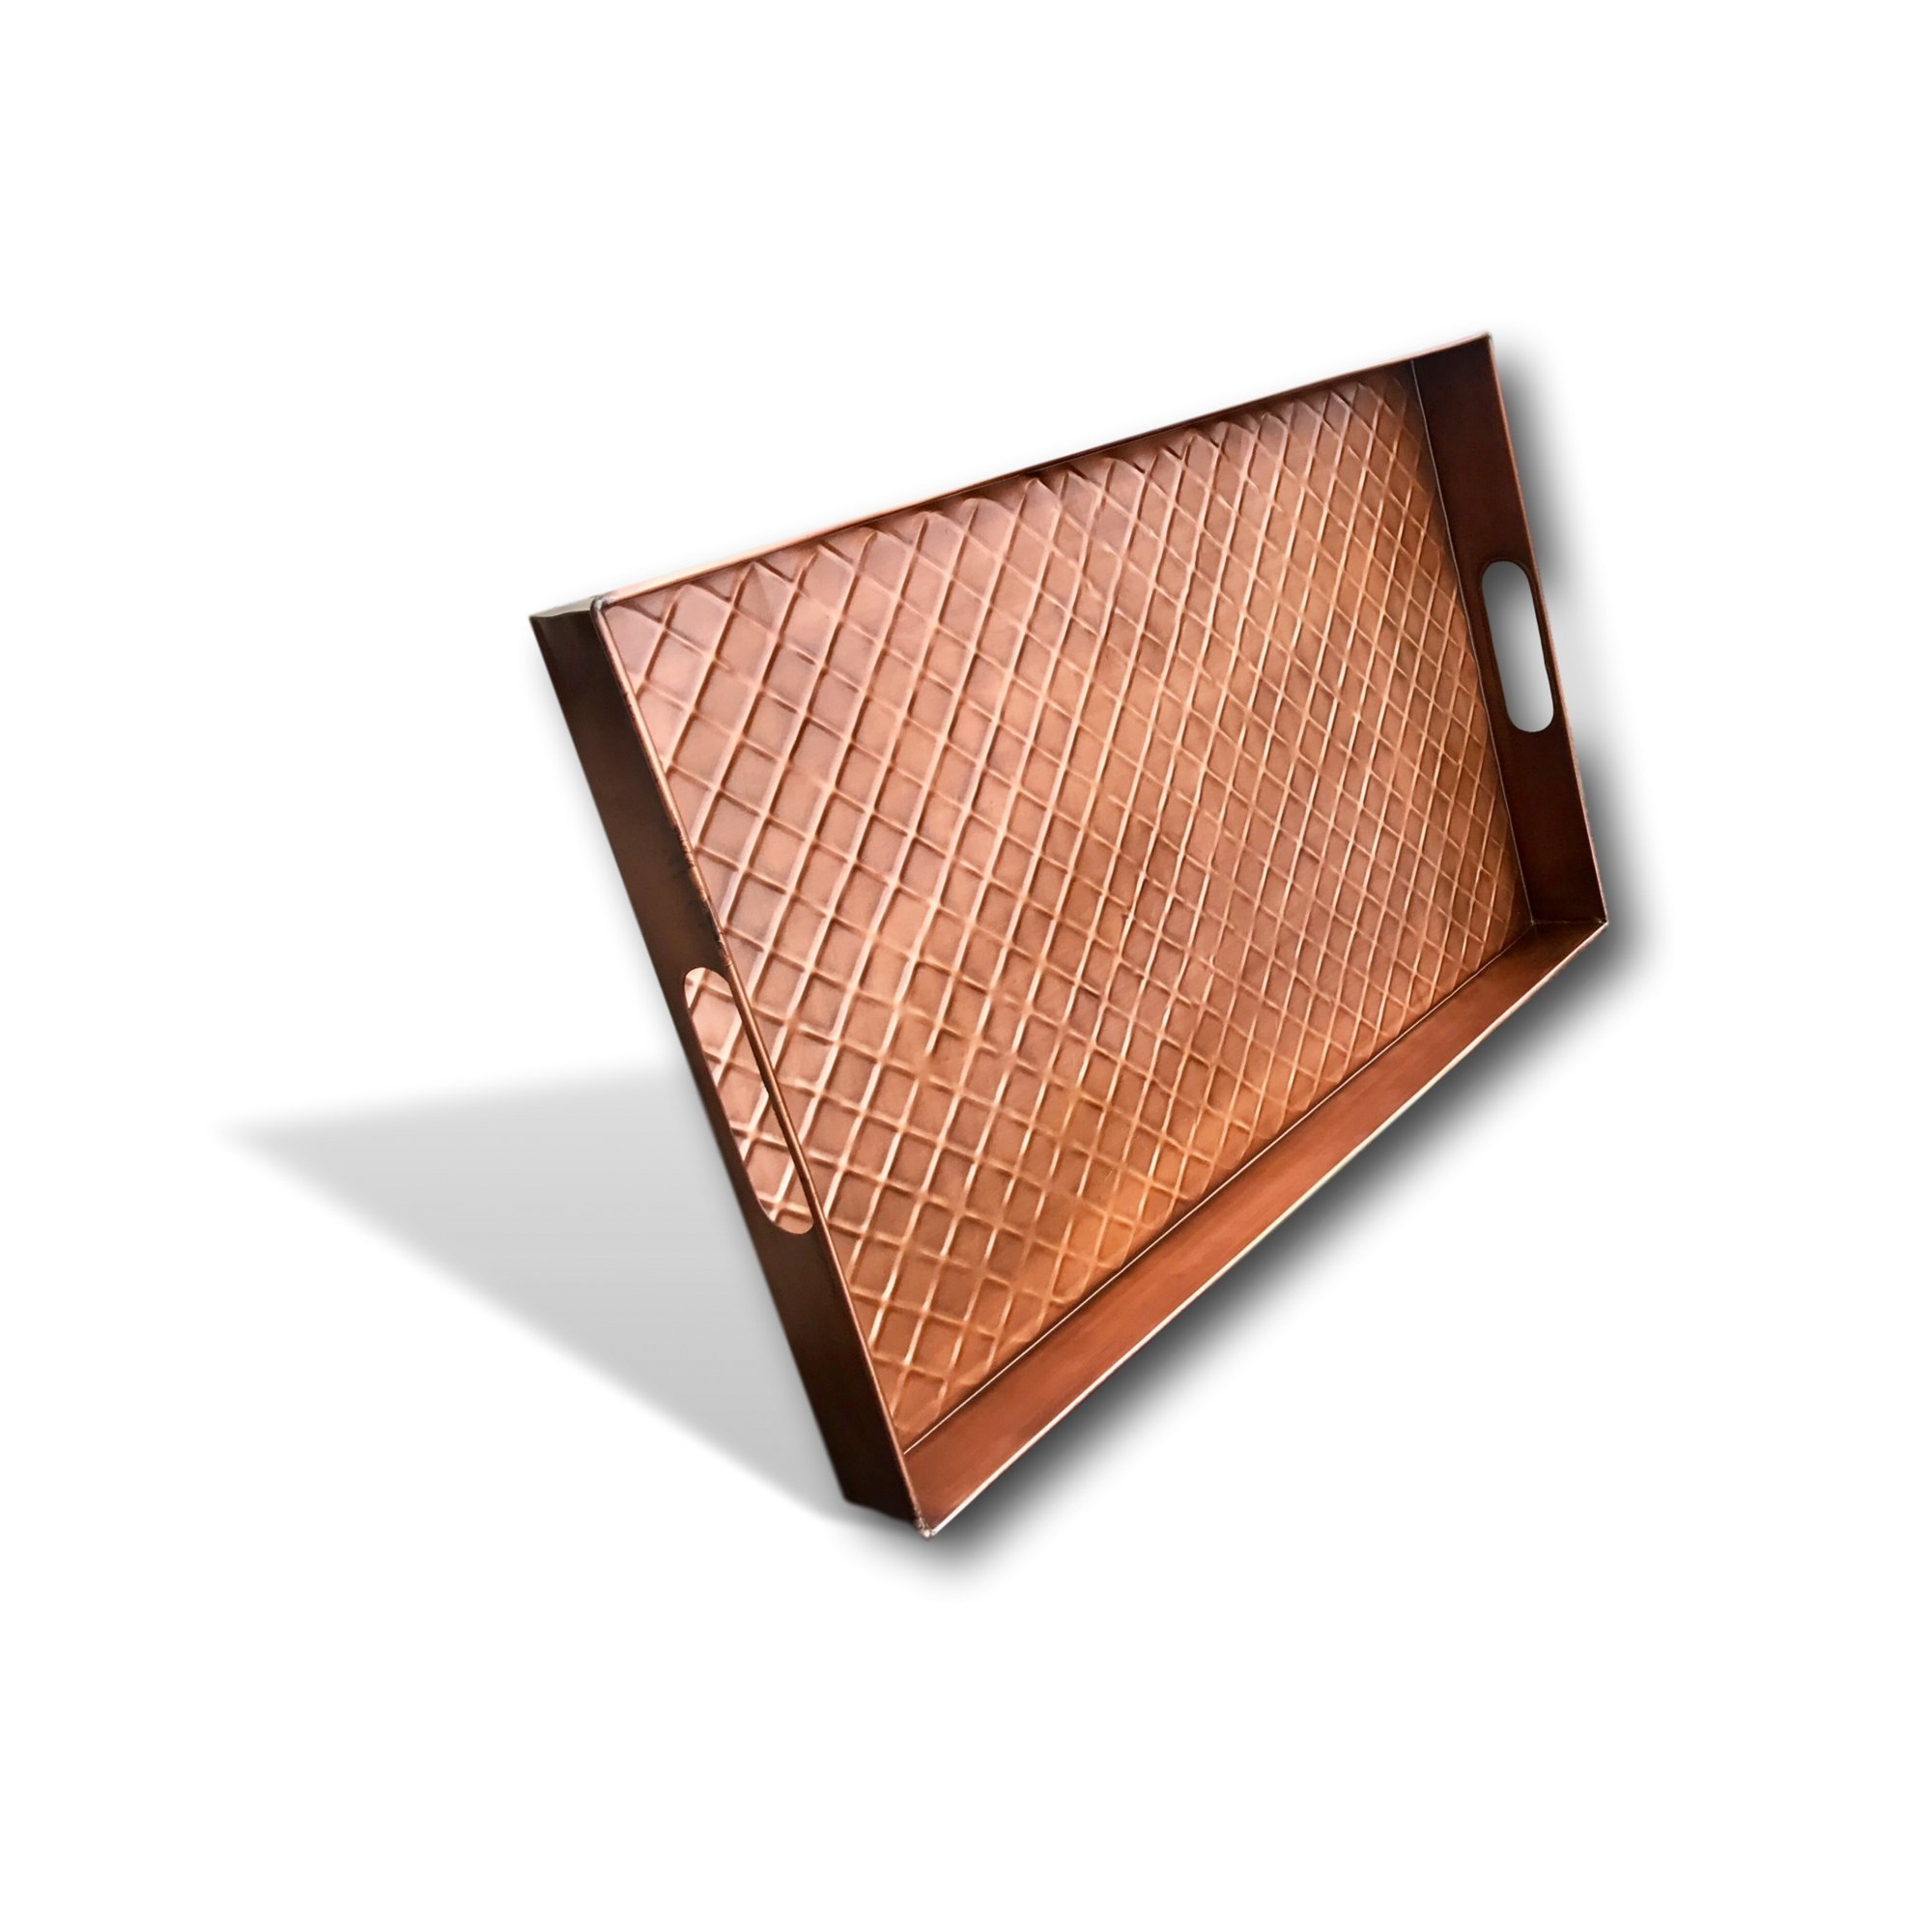 Kauri Multi-Purpose Diamond Large Boot and Shoe Tray | Metal Copper 24'' Boot Tray Design by Kauri